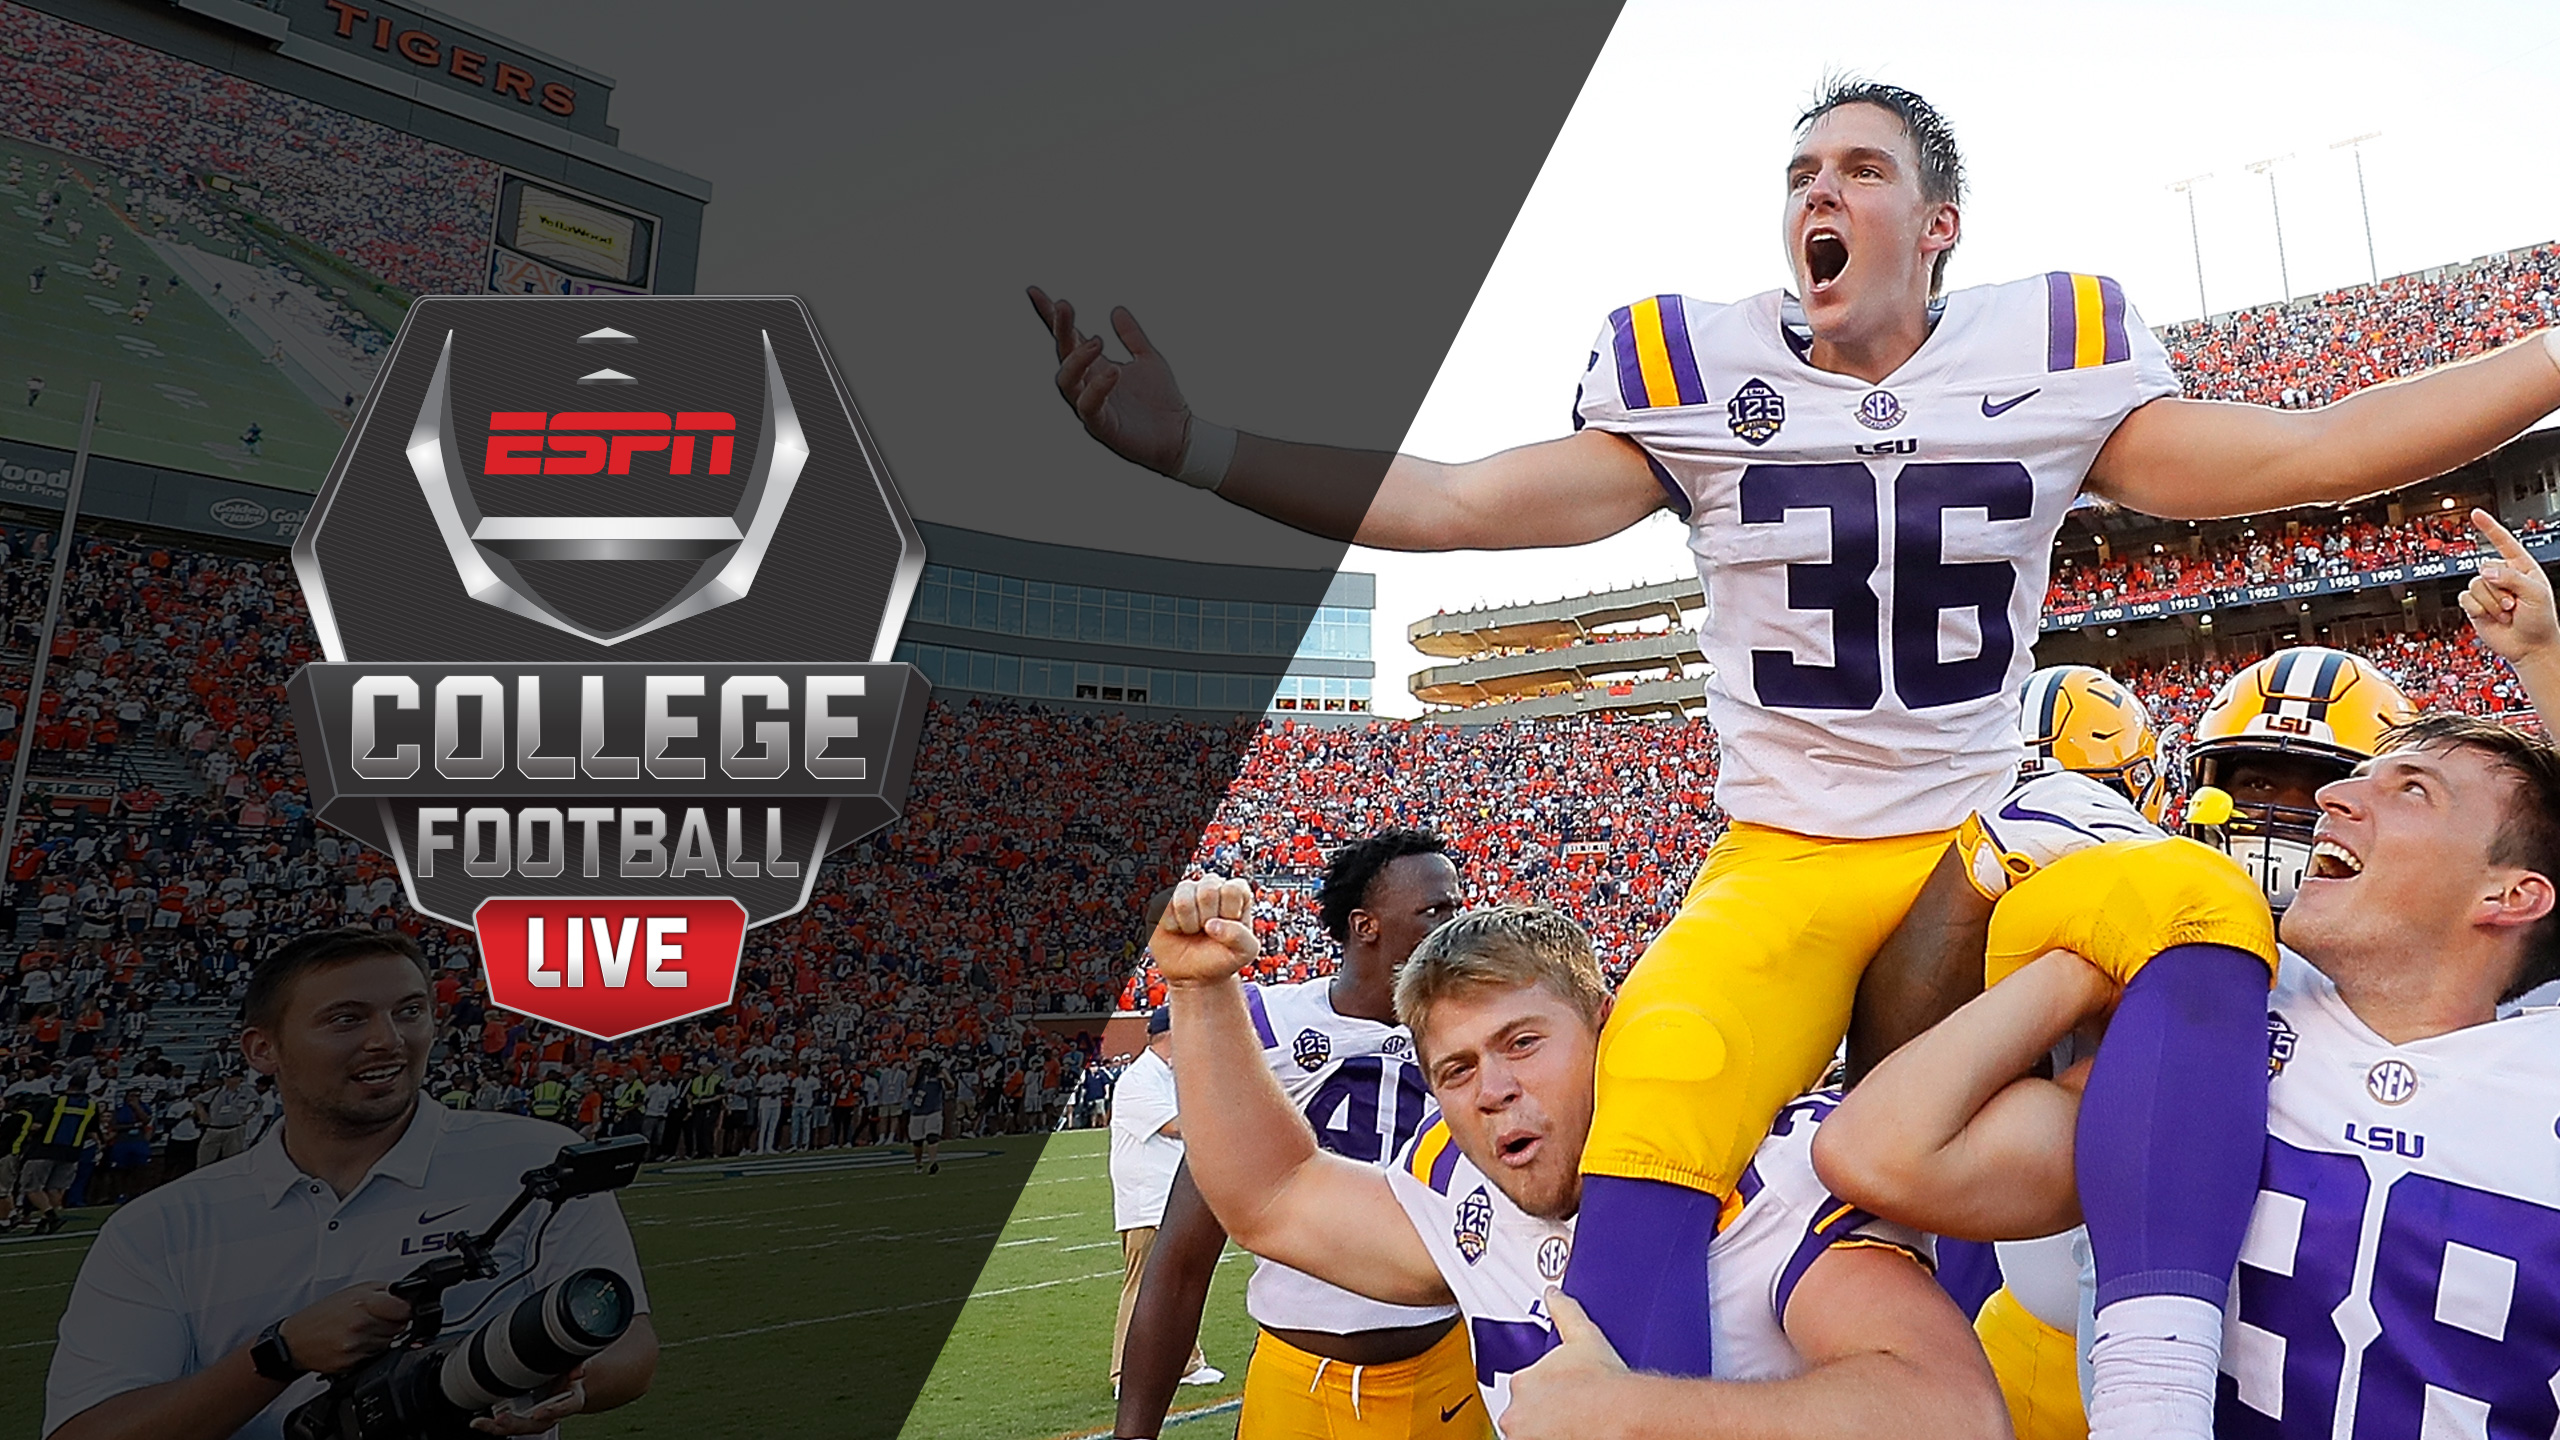 Mon, 9/17 - College Football Live Presented by ZipRecruiter